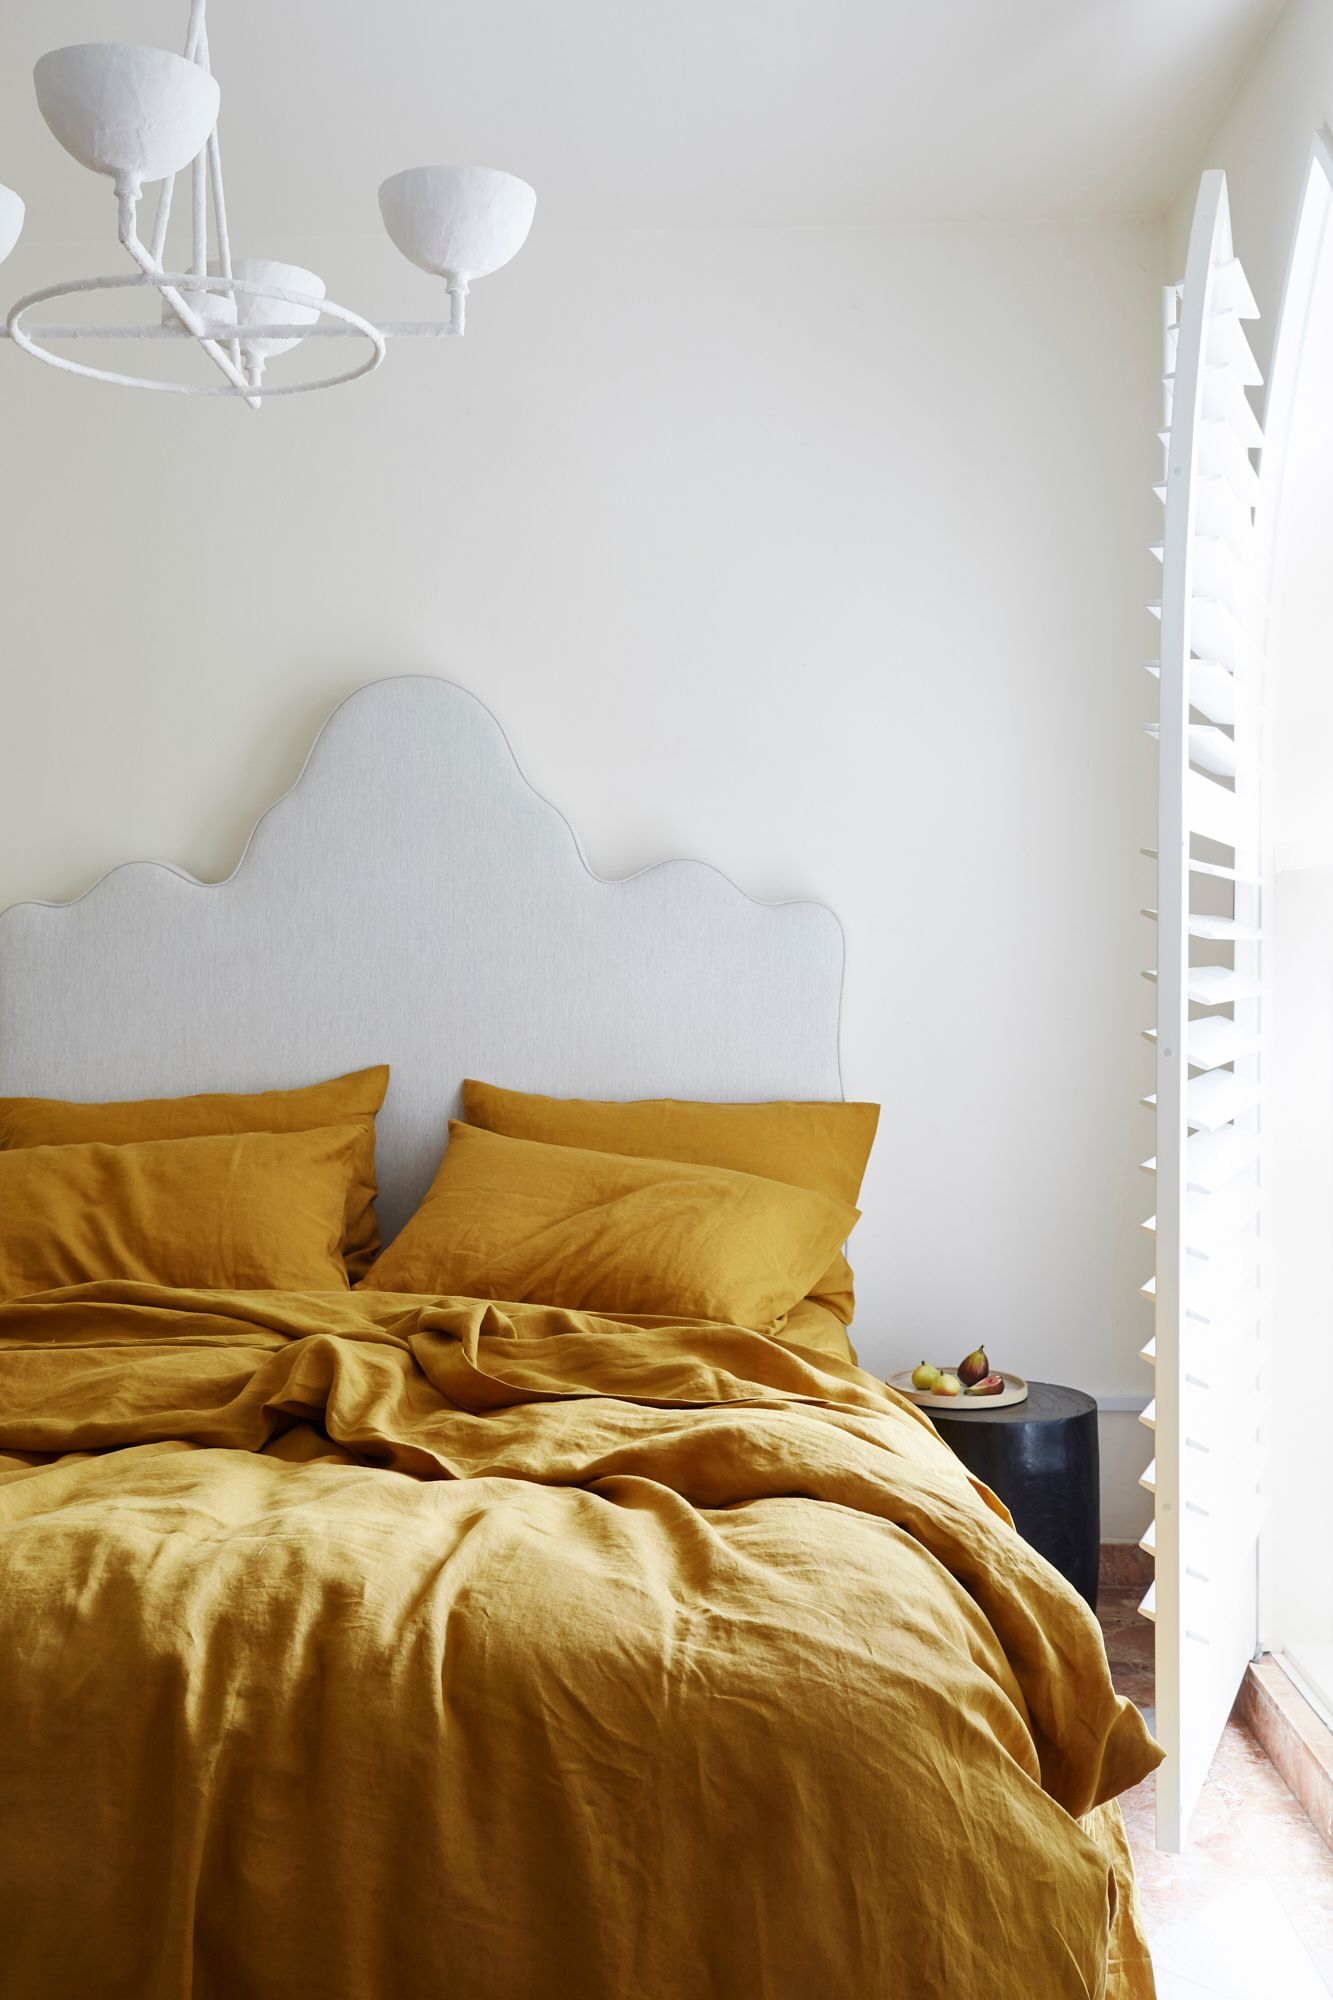 Interior designing with French Linen has never been so